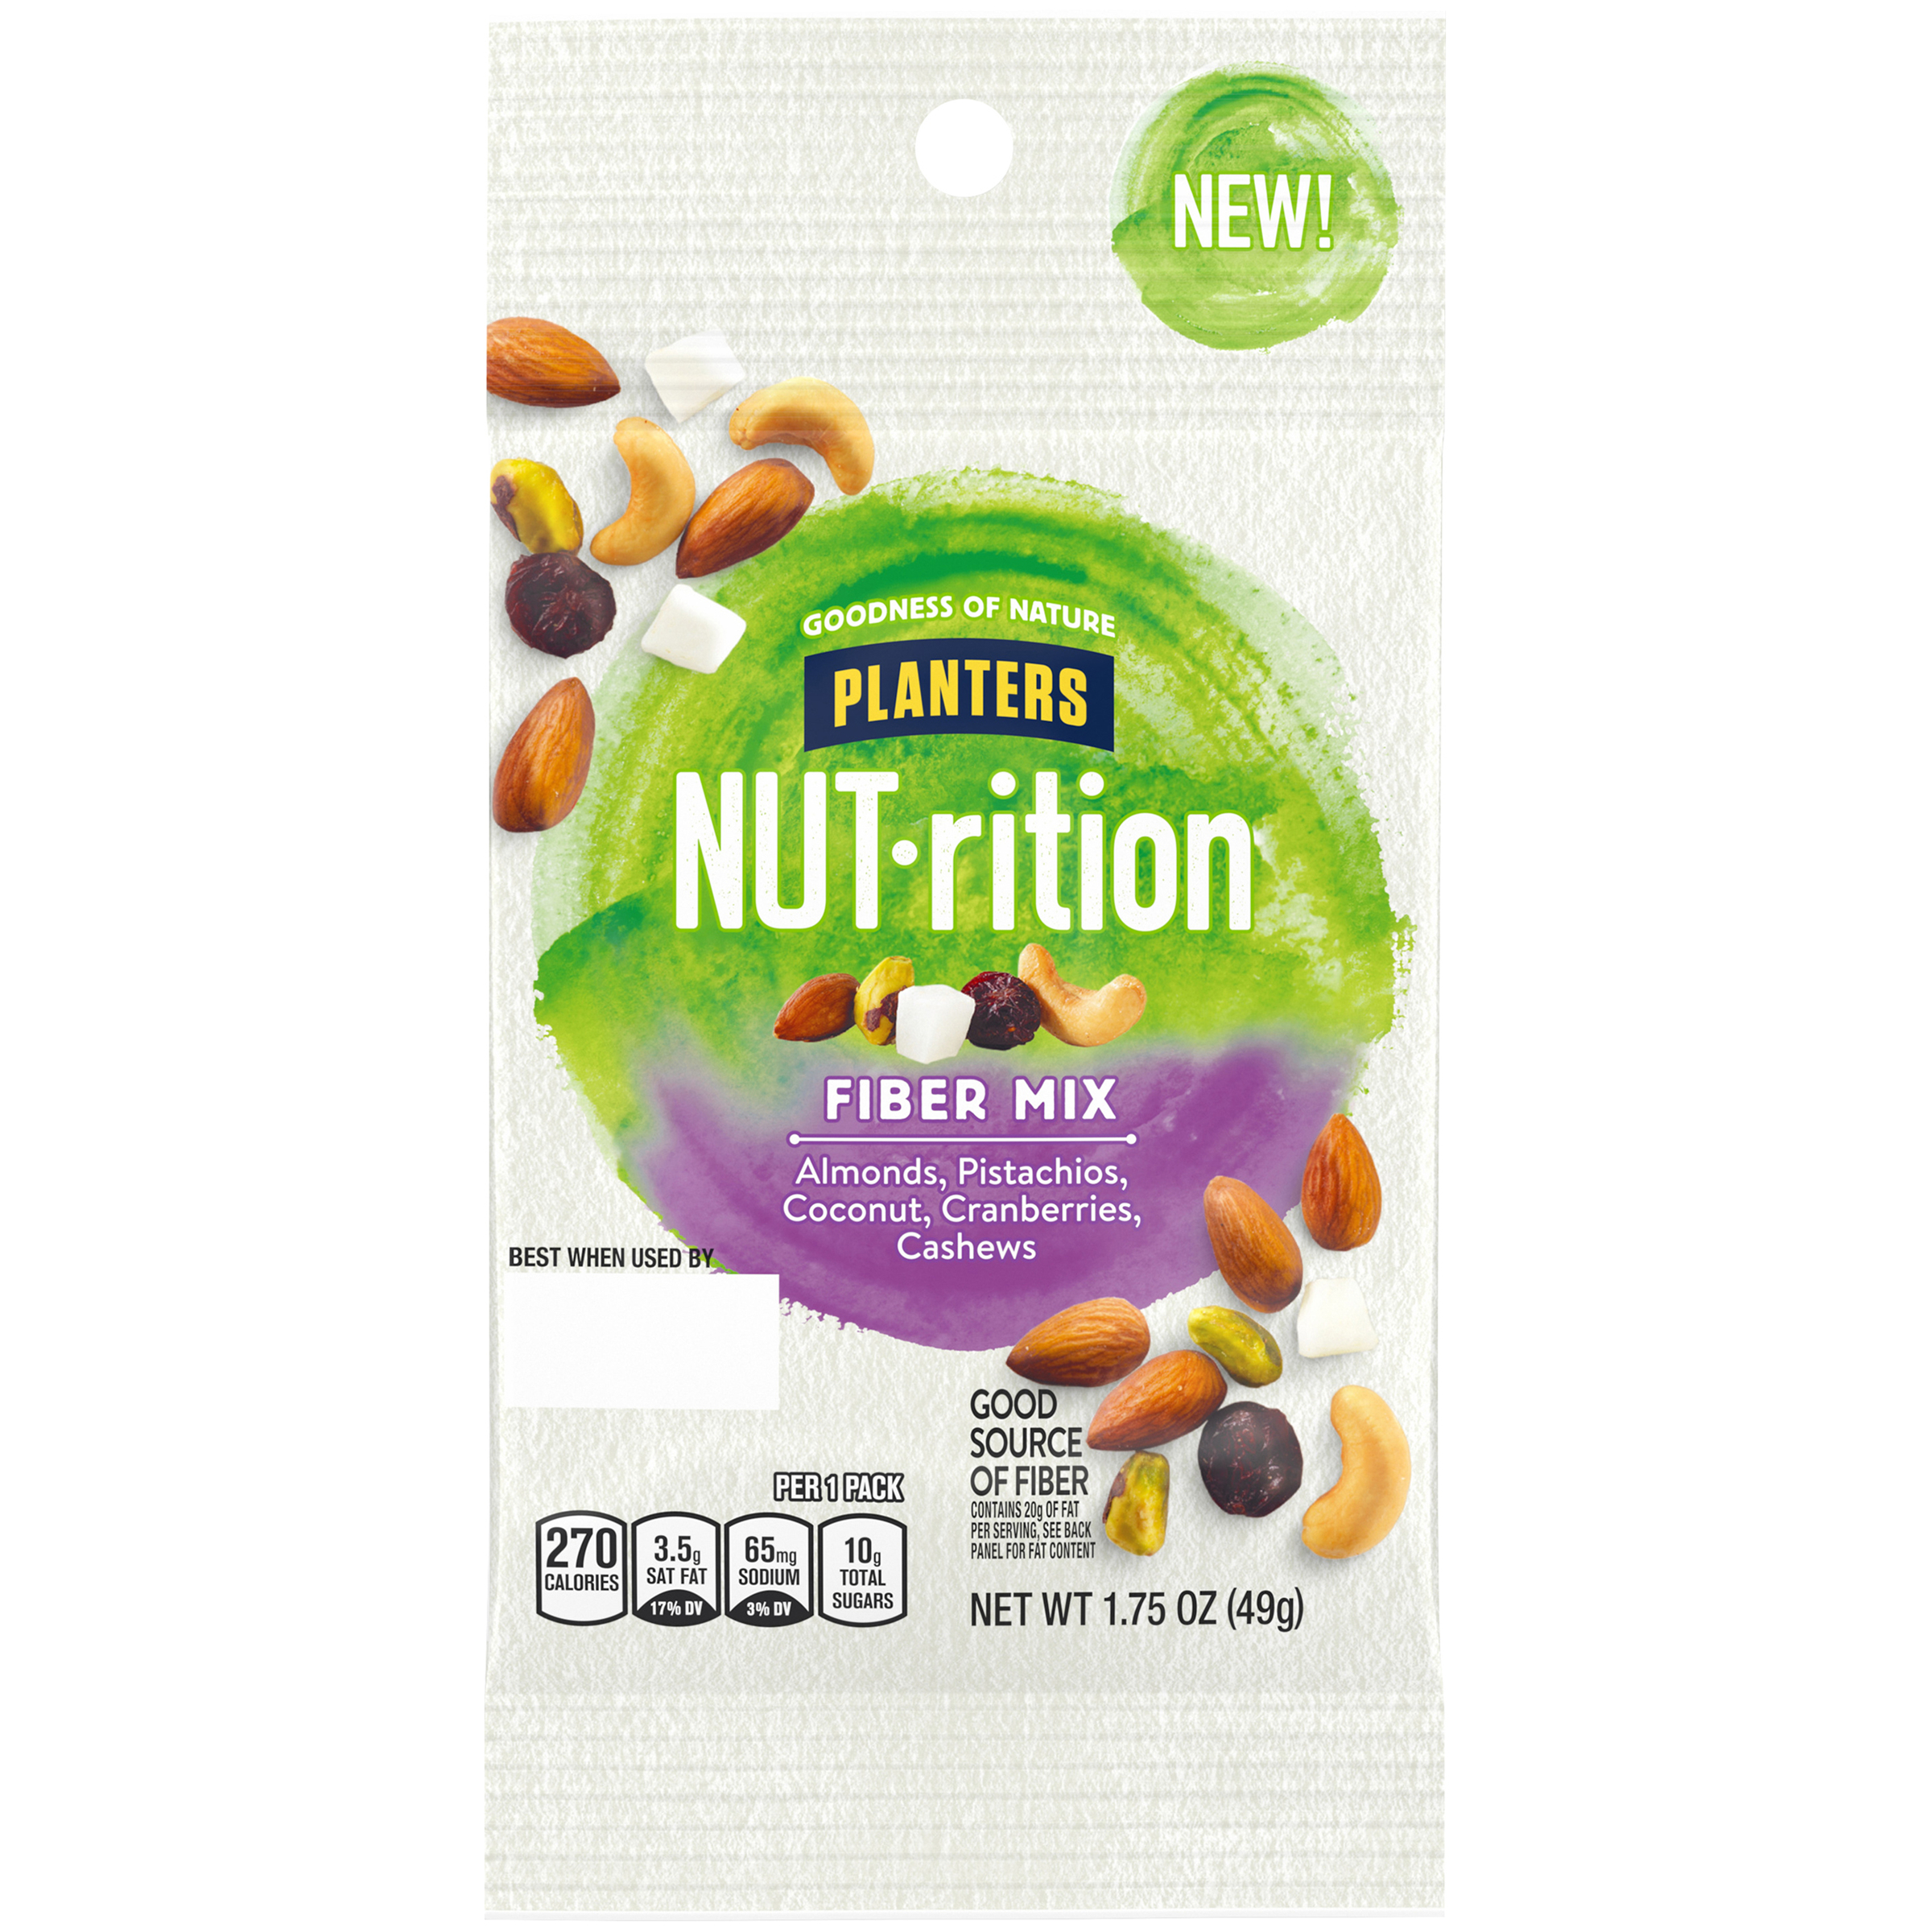 NUTrition Fiber Mix Mixed Nuts, 1.7 oz Pouch